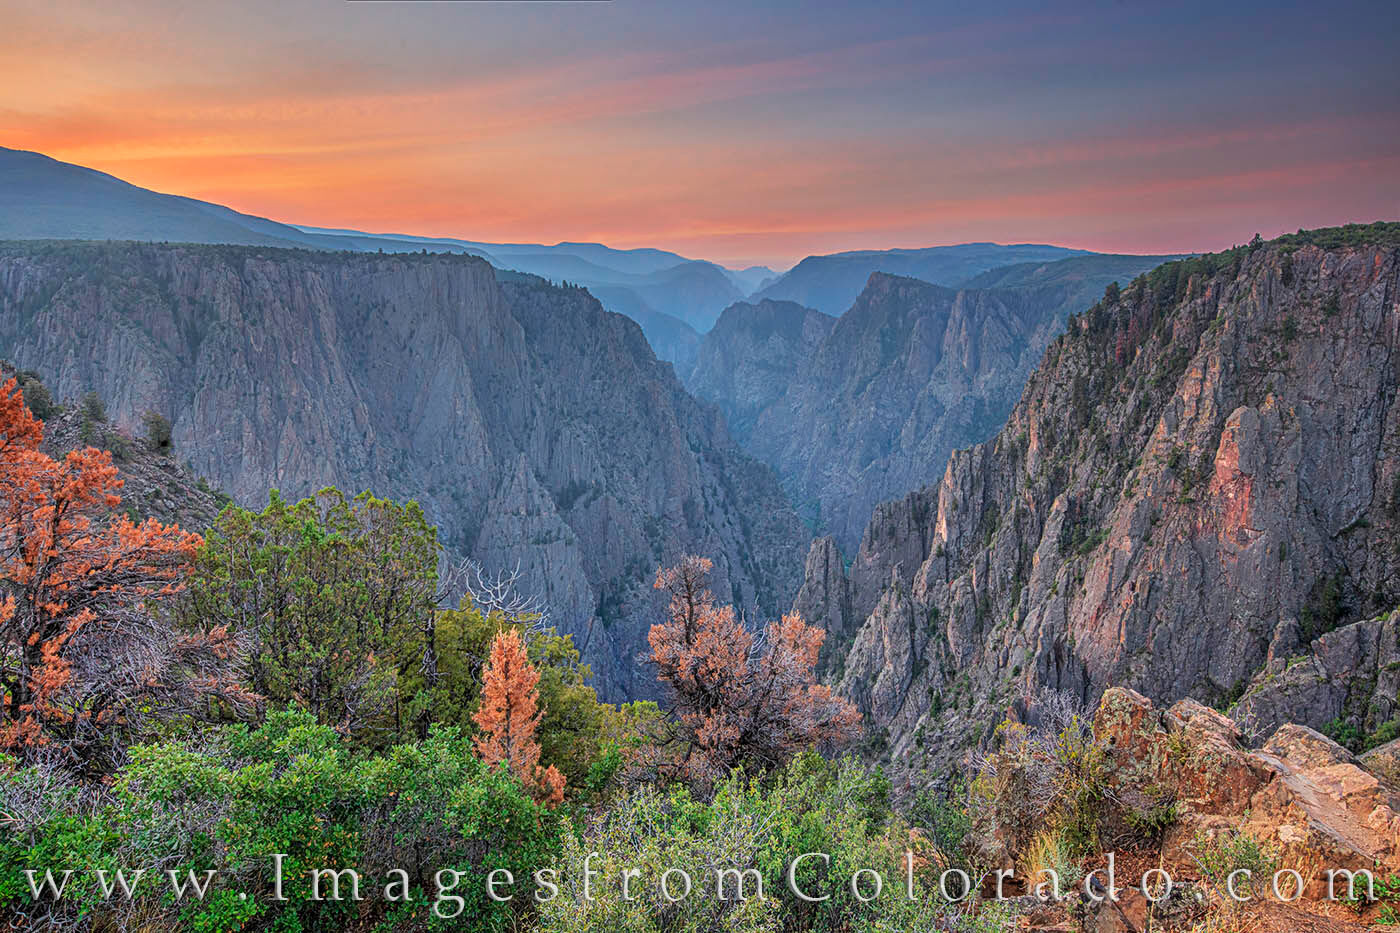 Near the entrance of the east portal of Black Canyon, Tomichi Point offers some amazing introductory views of this beautiful...